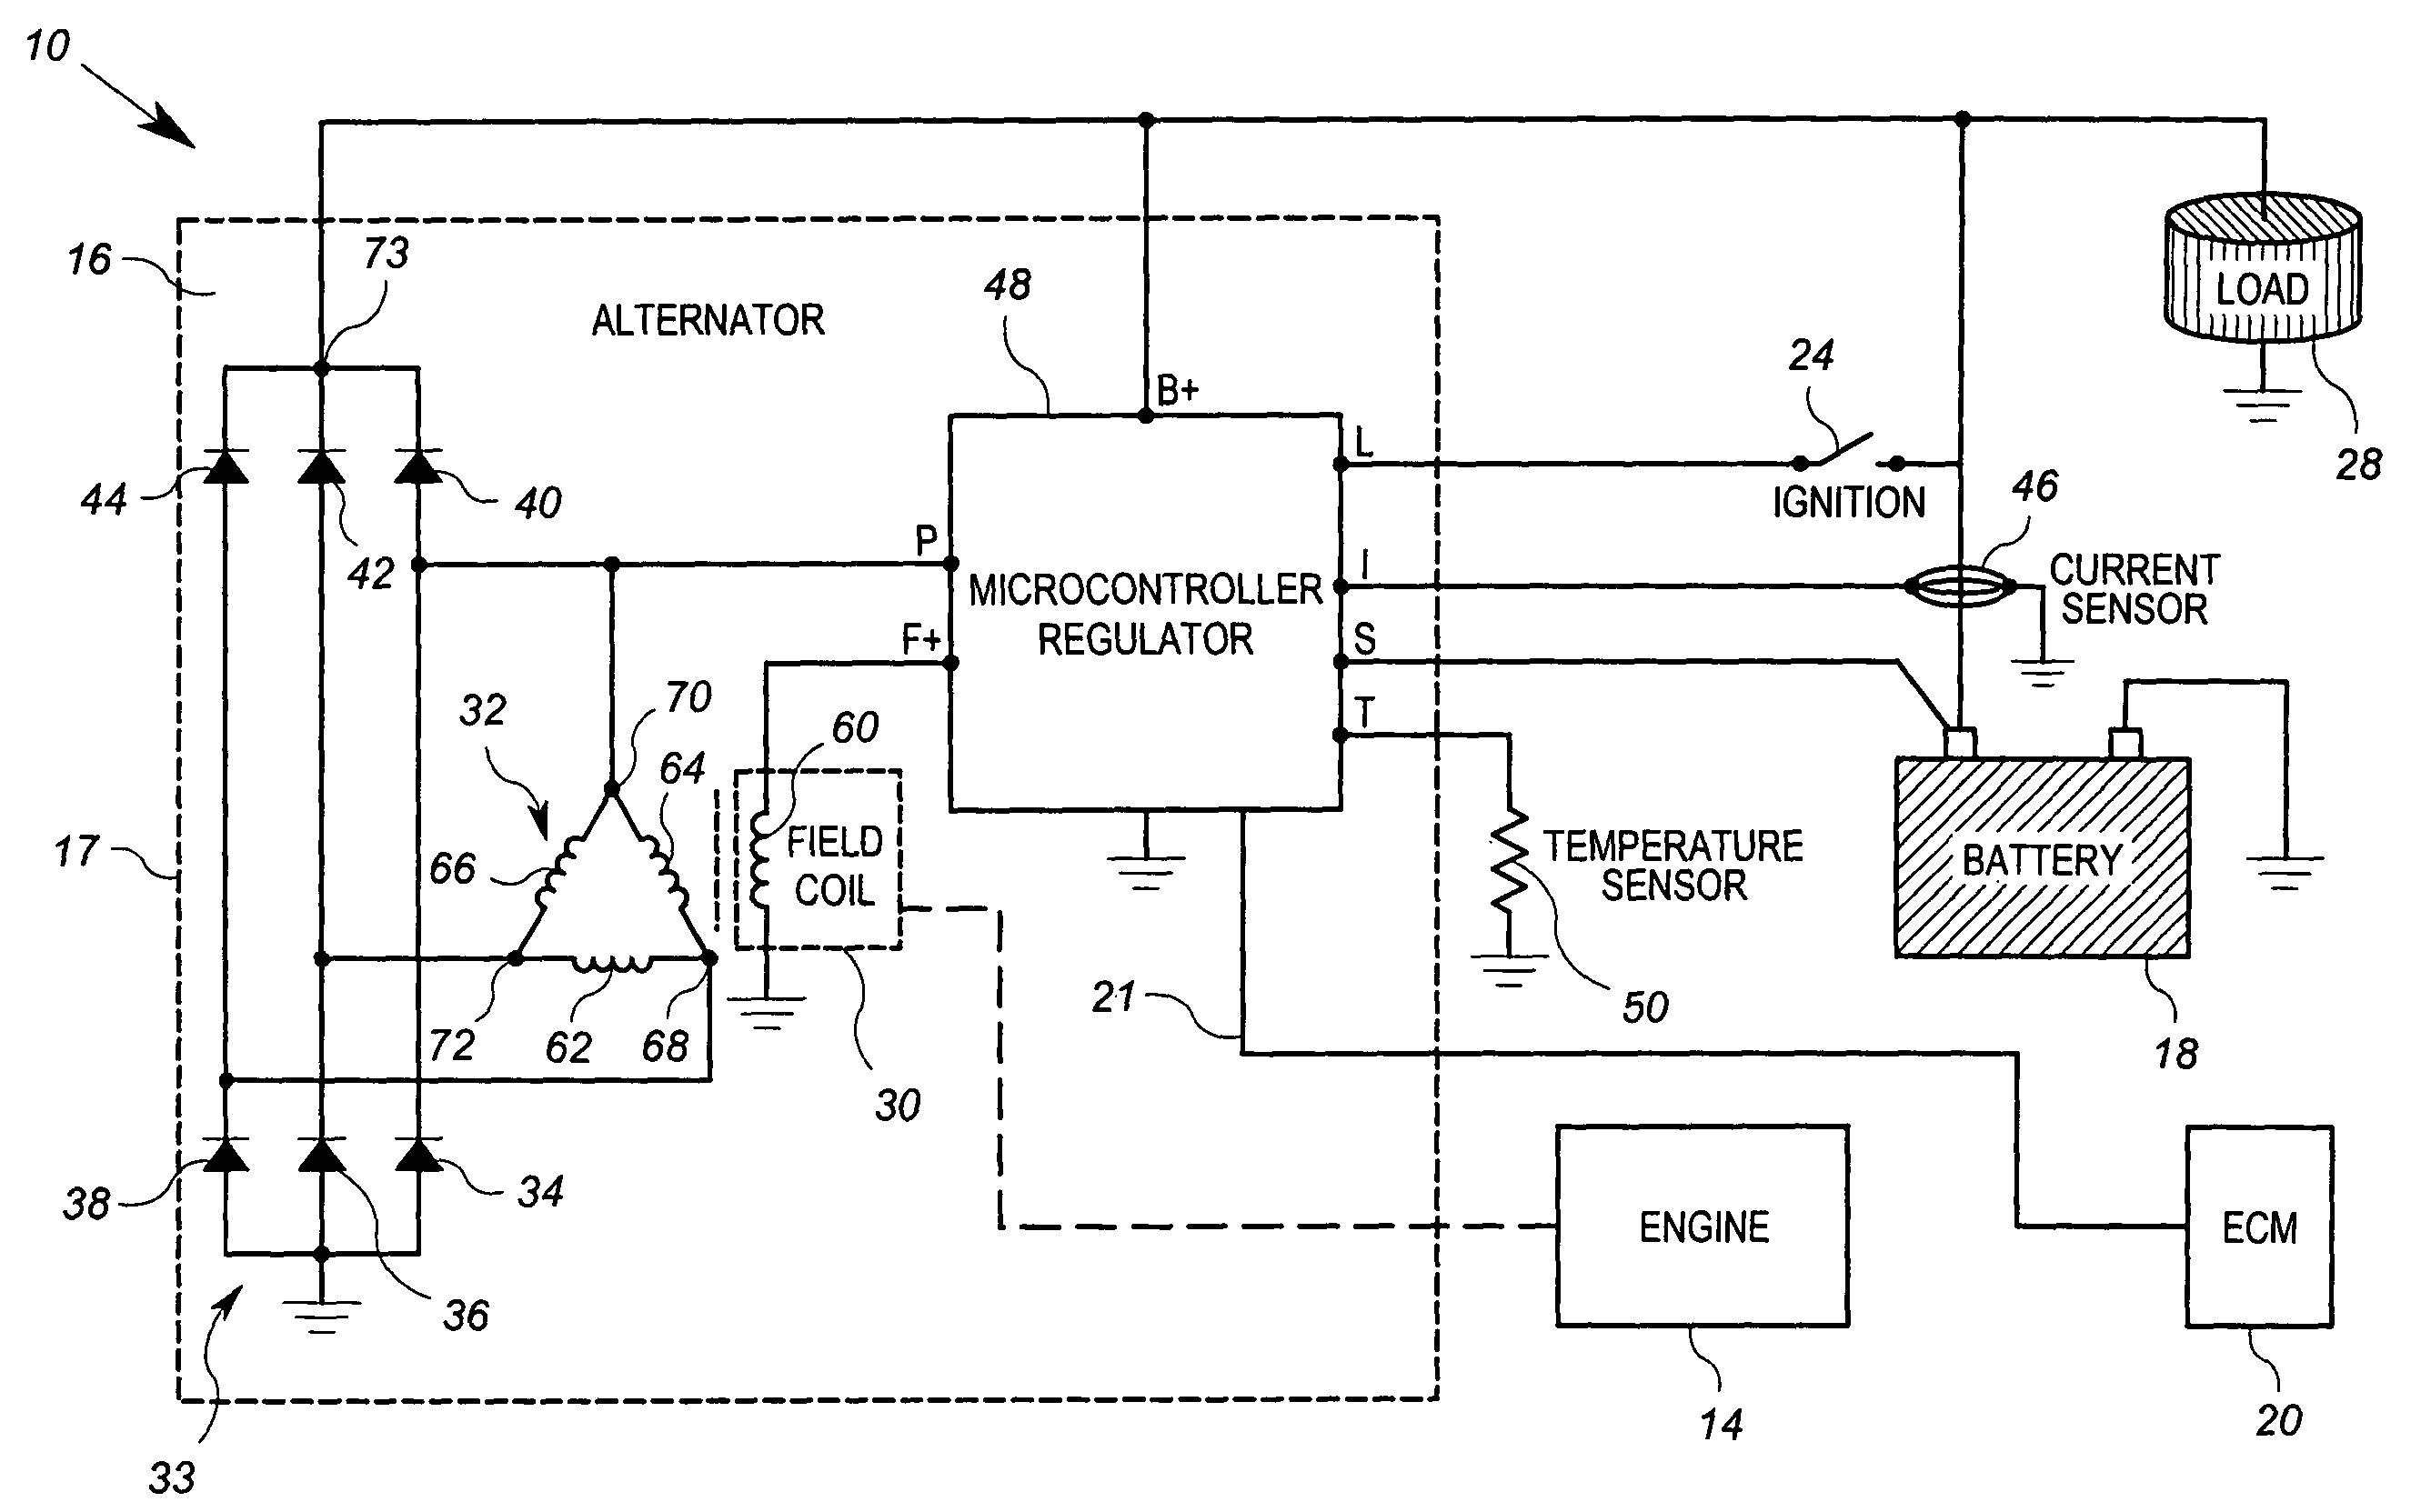 component alternator voltage regulator circuit ducati roundcase patent us8330430 with variable rotor field electronic us08330430 d diagram